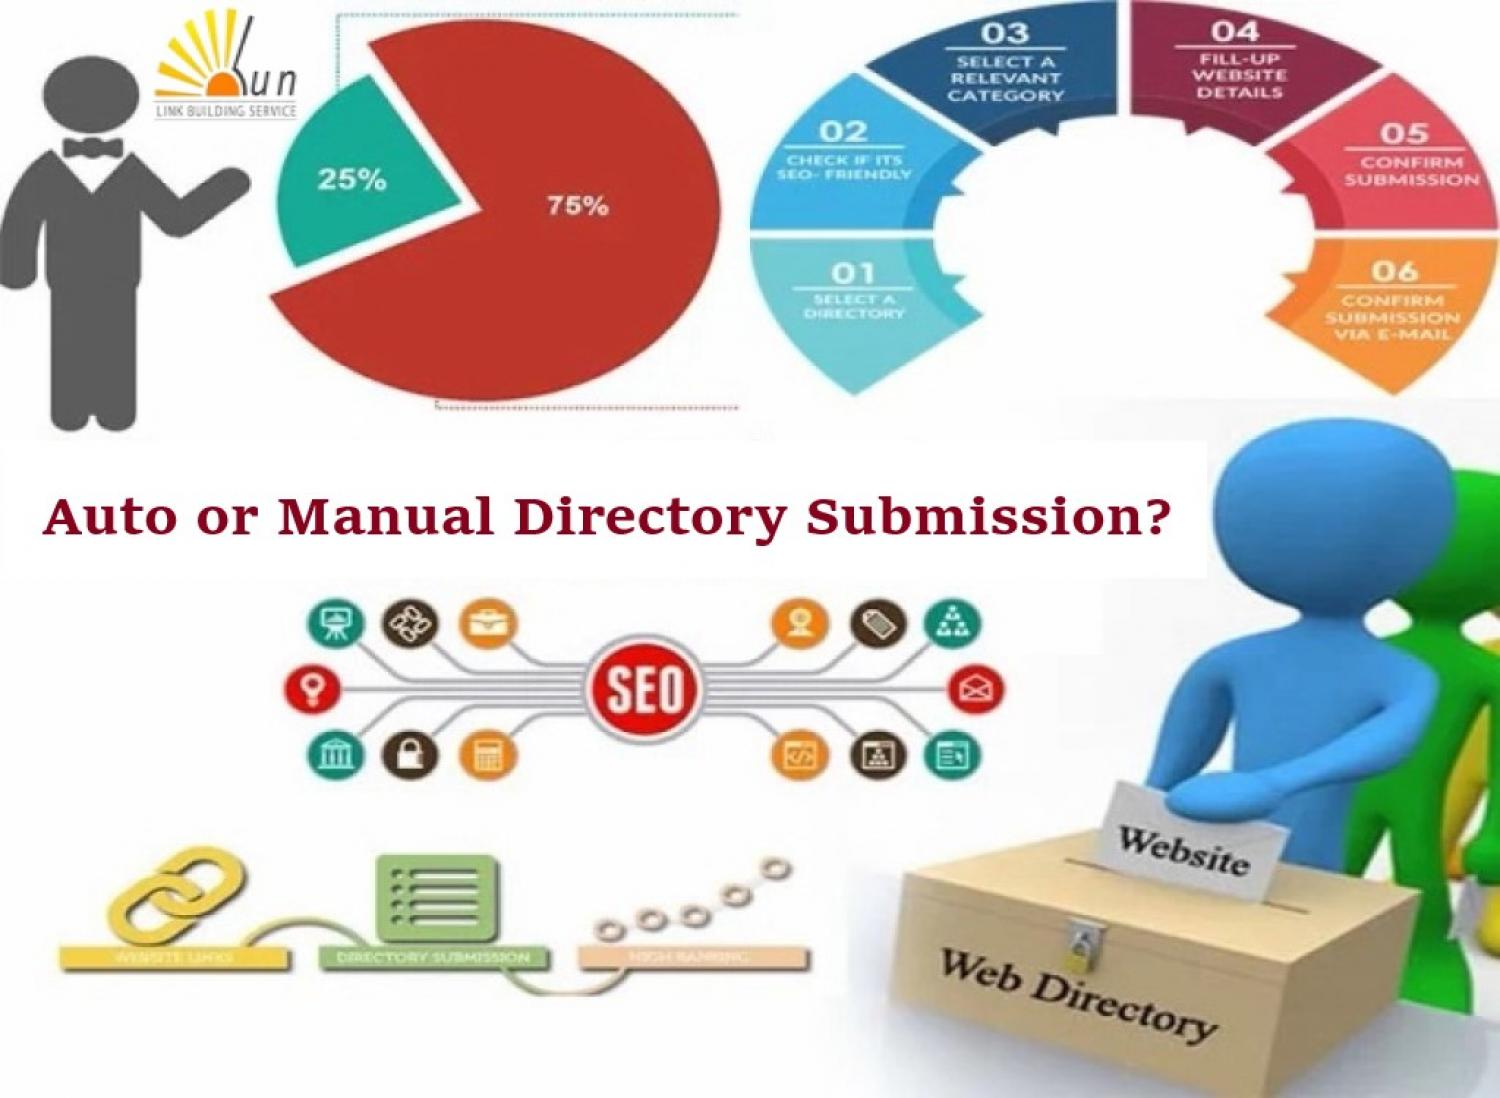 Manual Directory Submission or Auto Directory Submission